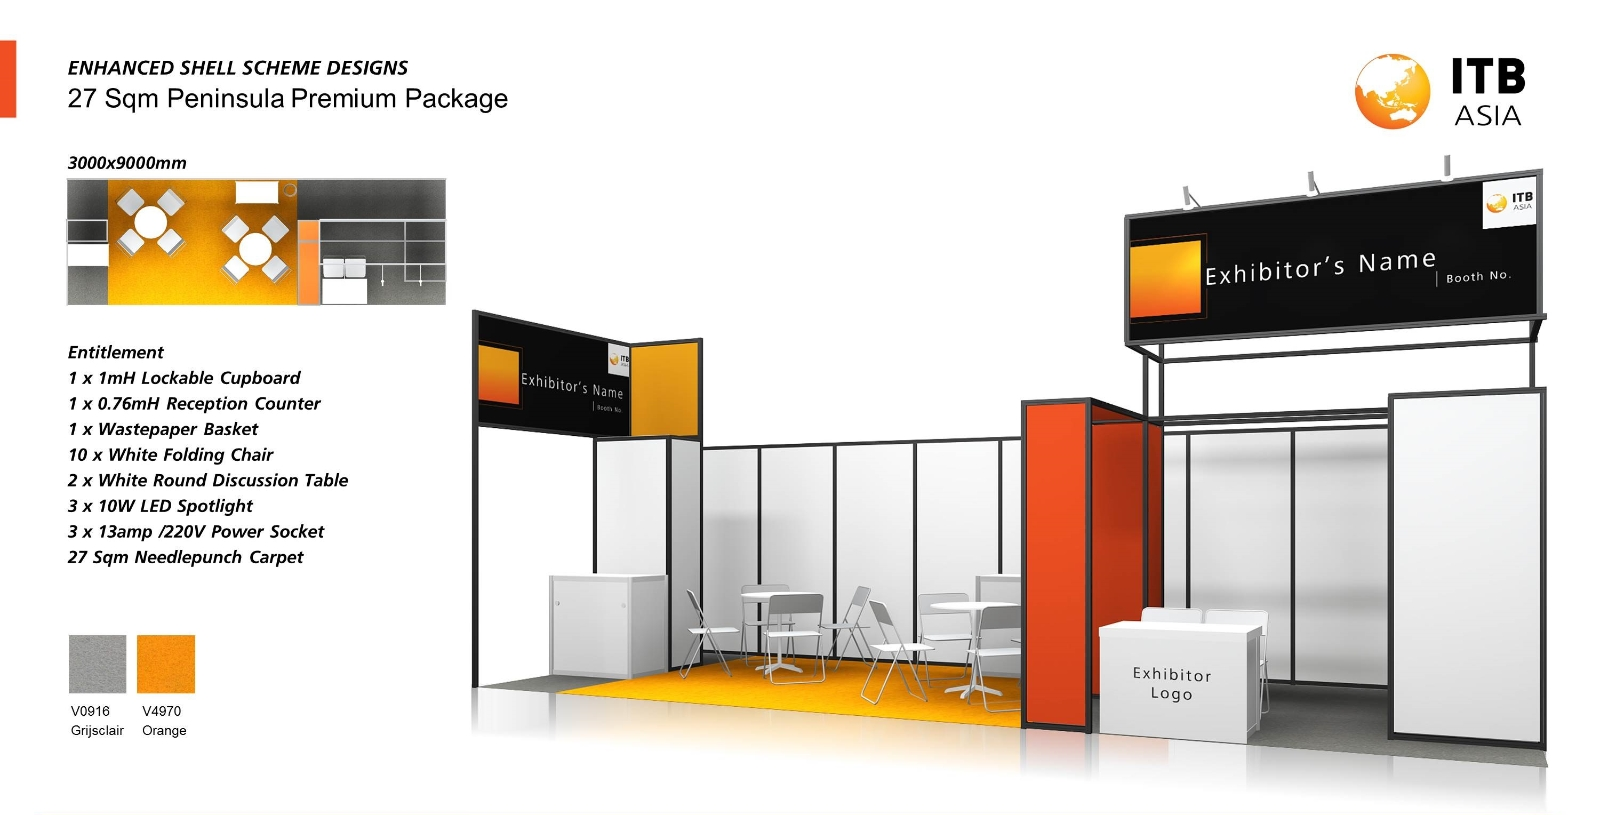 Exhibition Shell Zone : Shell scheme hire tradeshow and exhibition booth rental